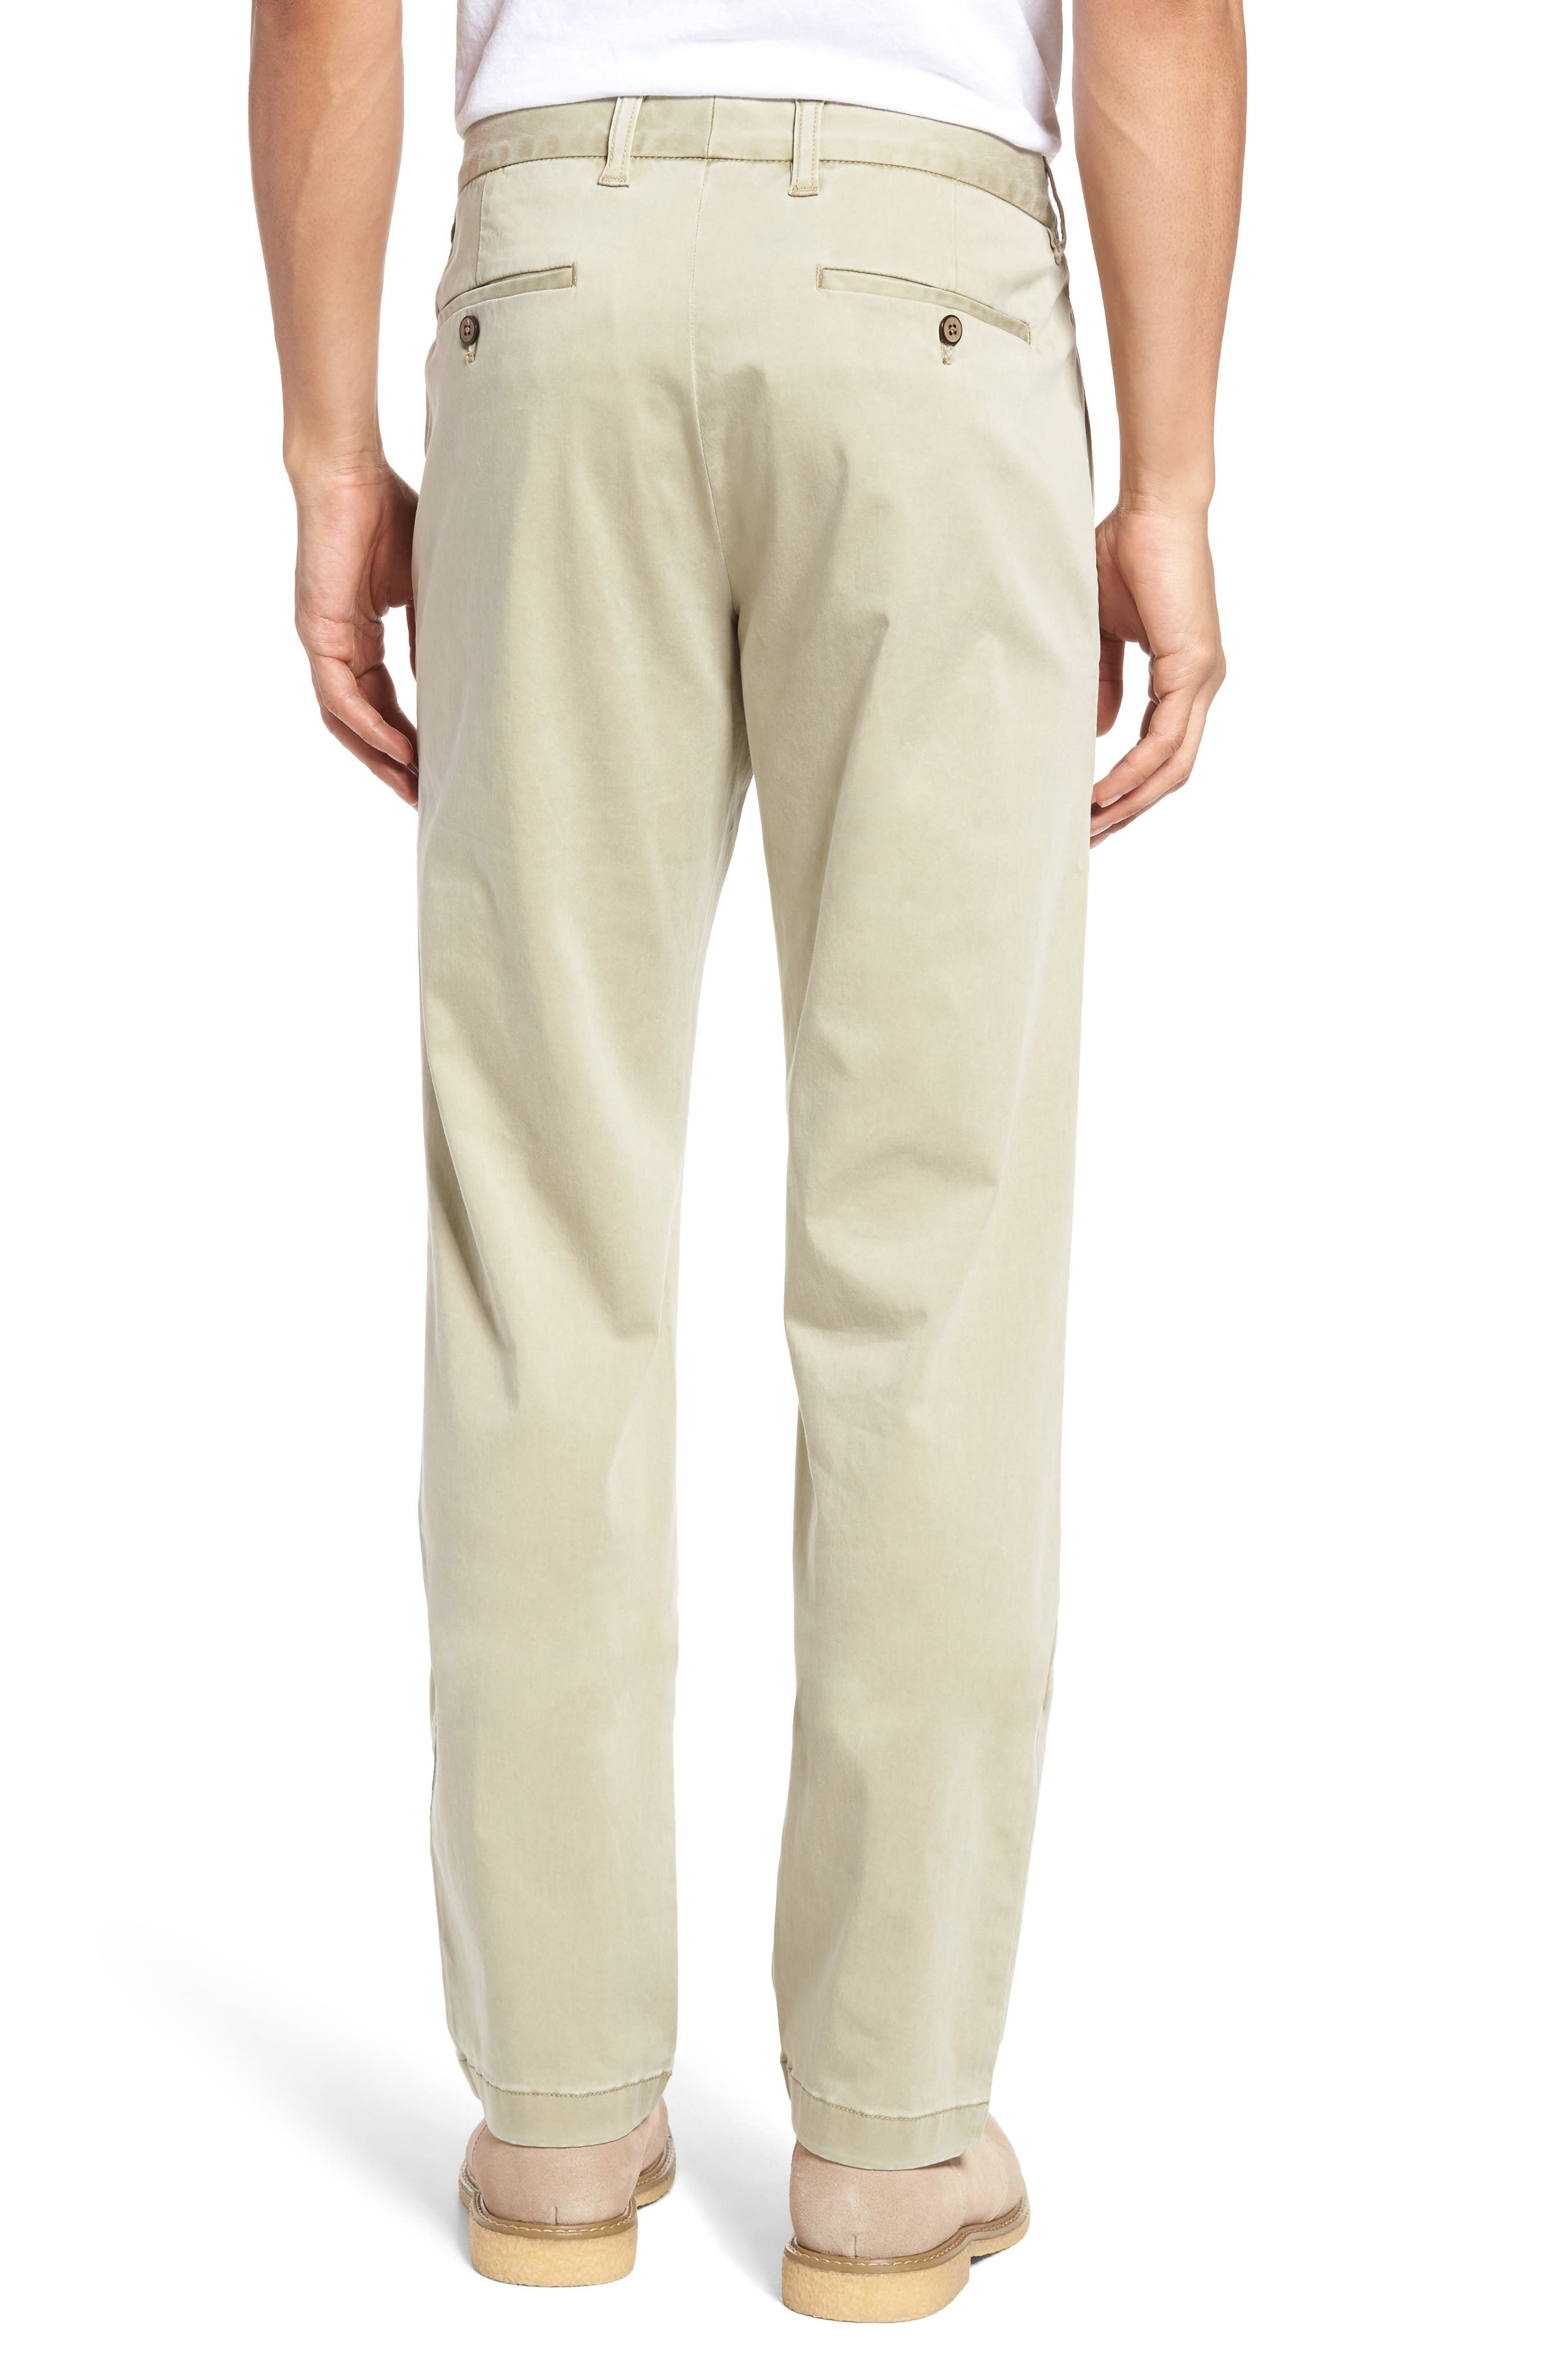 Boracay Flat Front Pants,                             Alternate thumbnail 2, color,                             KHAKI